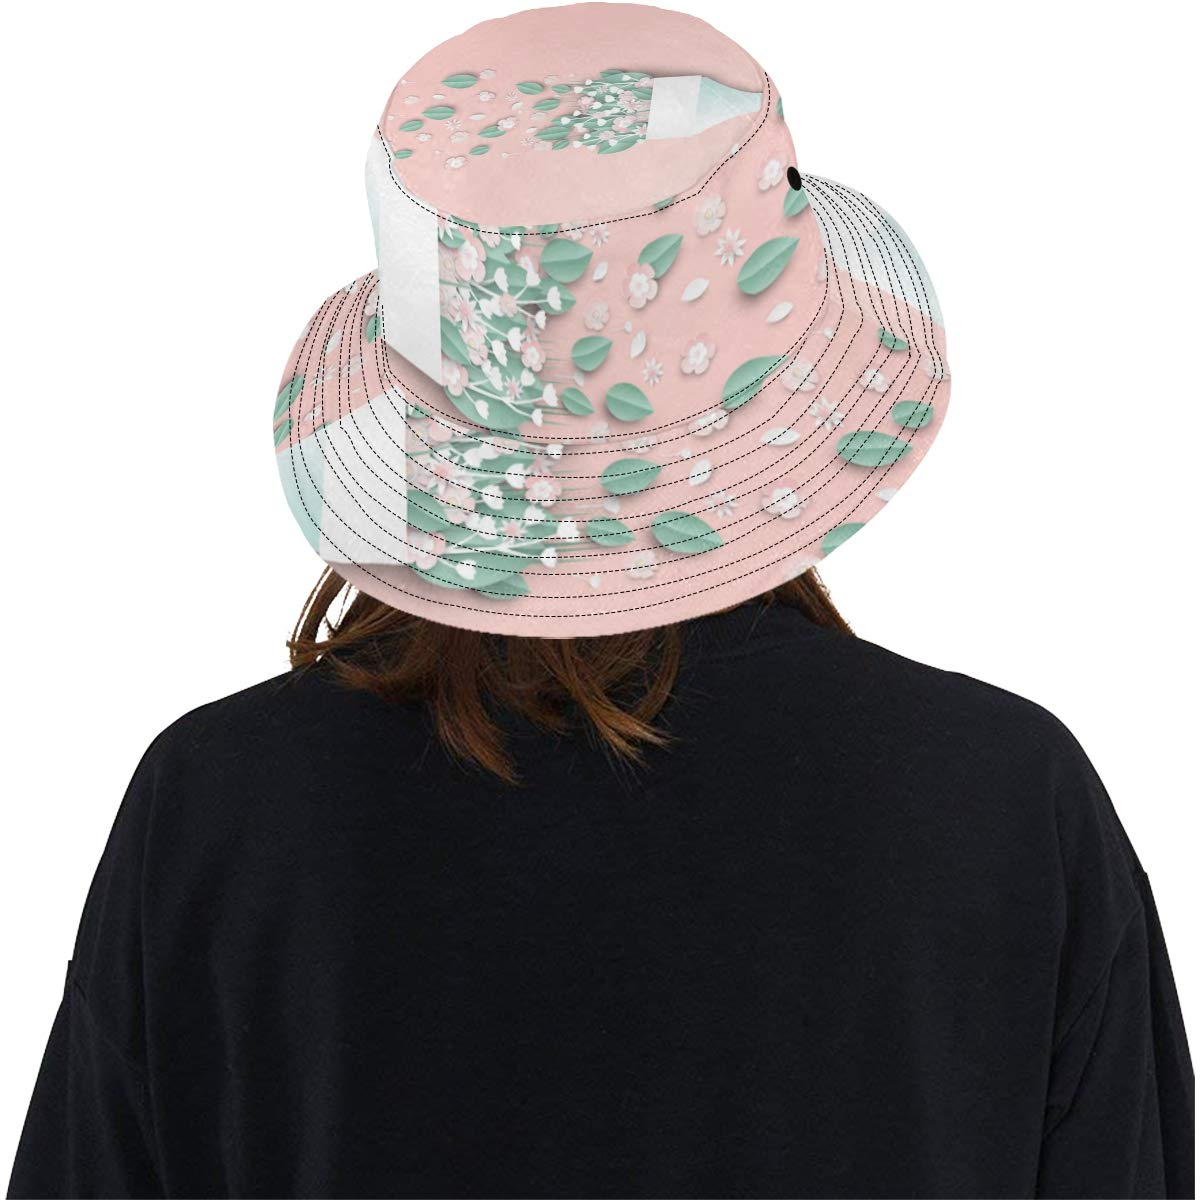 Bouquet Design Paper Flowers Art New Summer Unisex Cotton Fashion Fishing Sun Bucket Hats for Kid Teens Women and Men with Customize Top Packable Fisherman Cap for Outdoor Travel